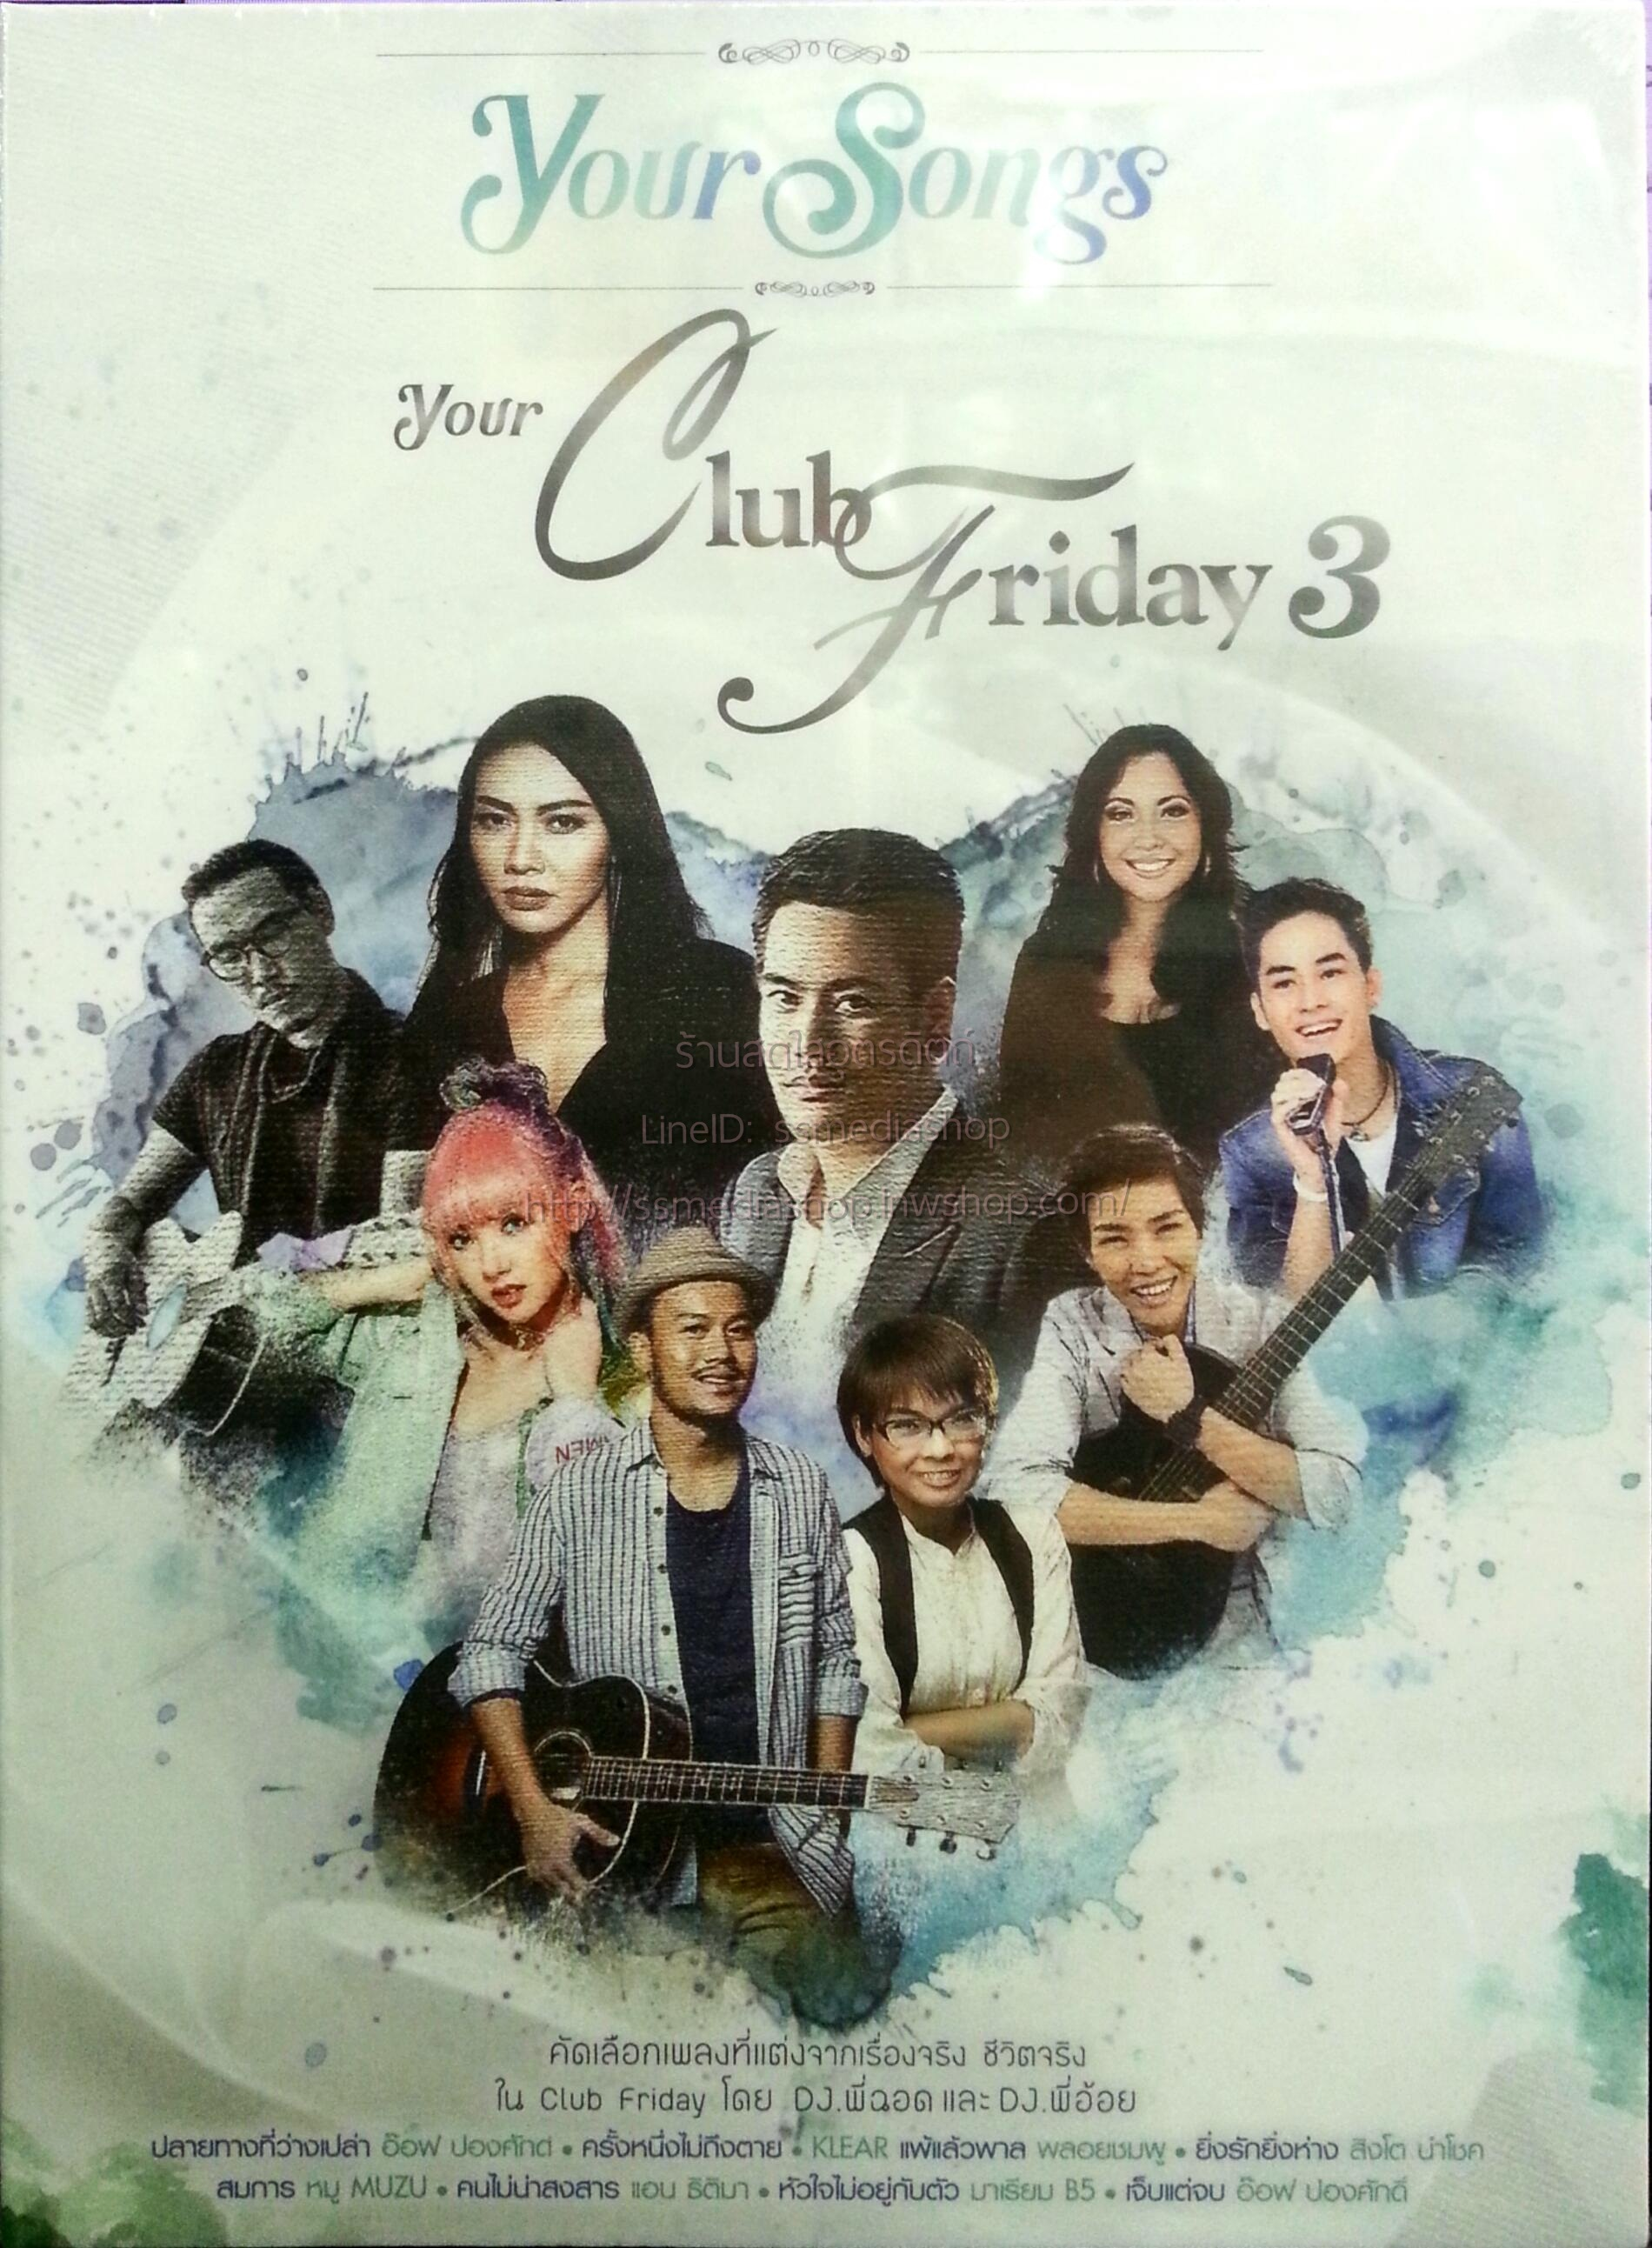 CD Your songs your club Friday3